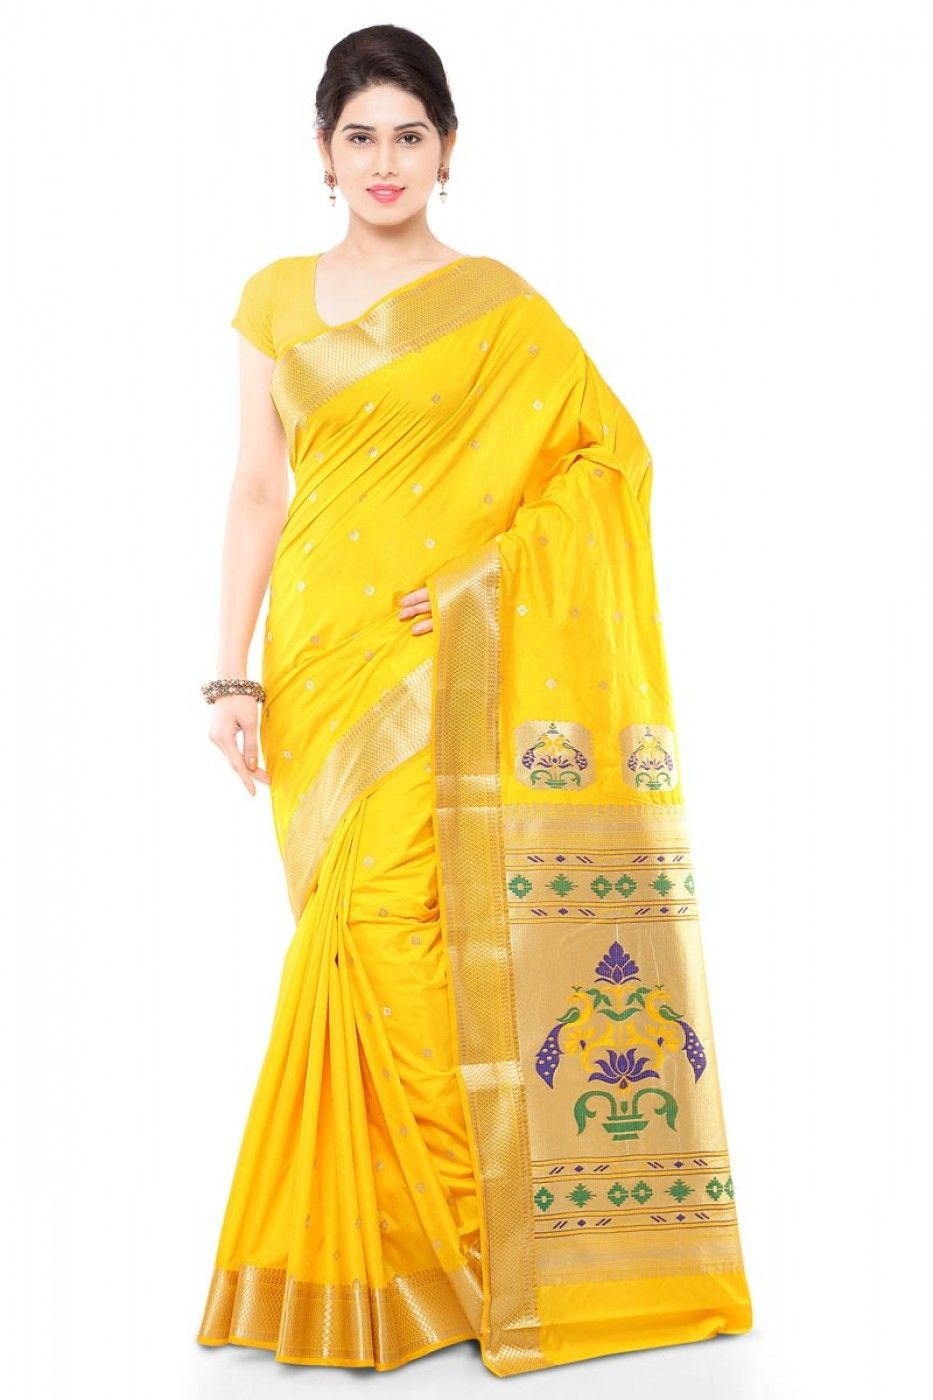 Ceremonious #Yellow Color Party Wear #Paithani #Saree in Art Silk Fabric